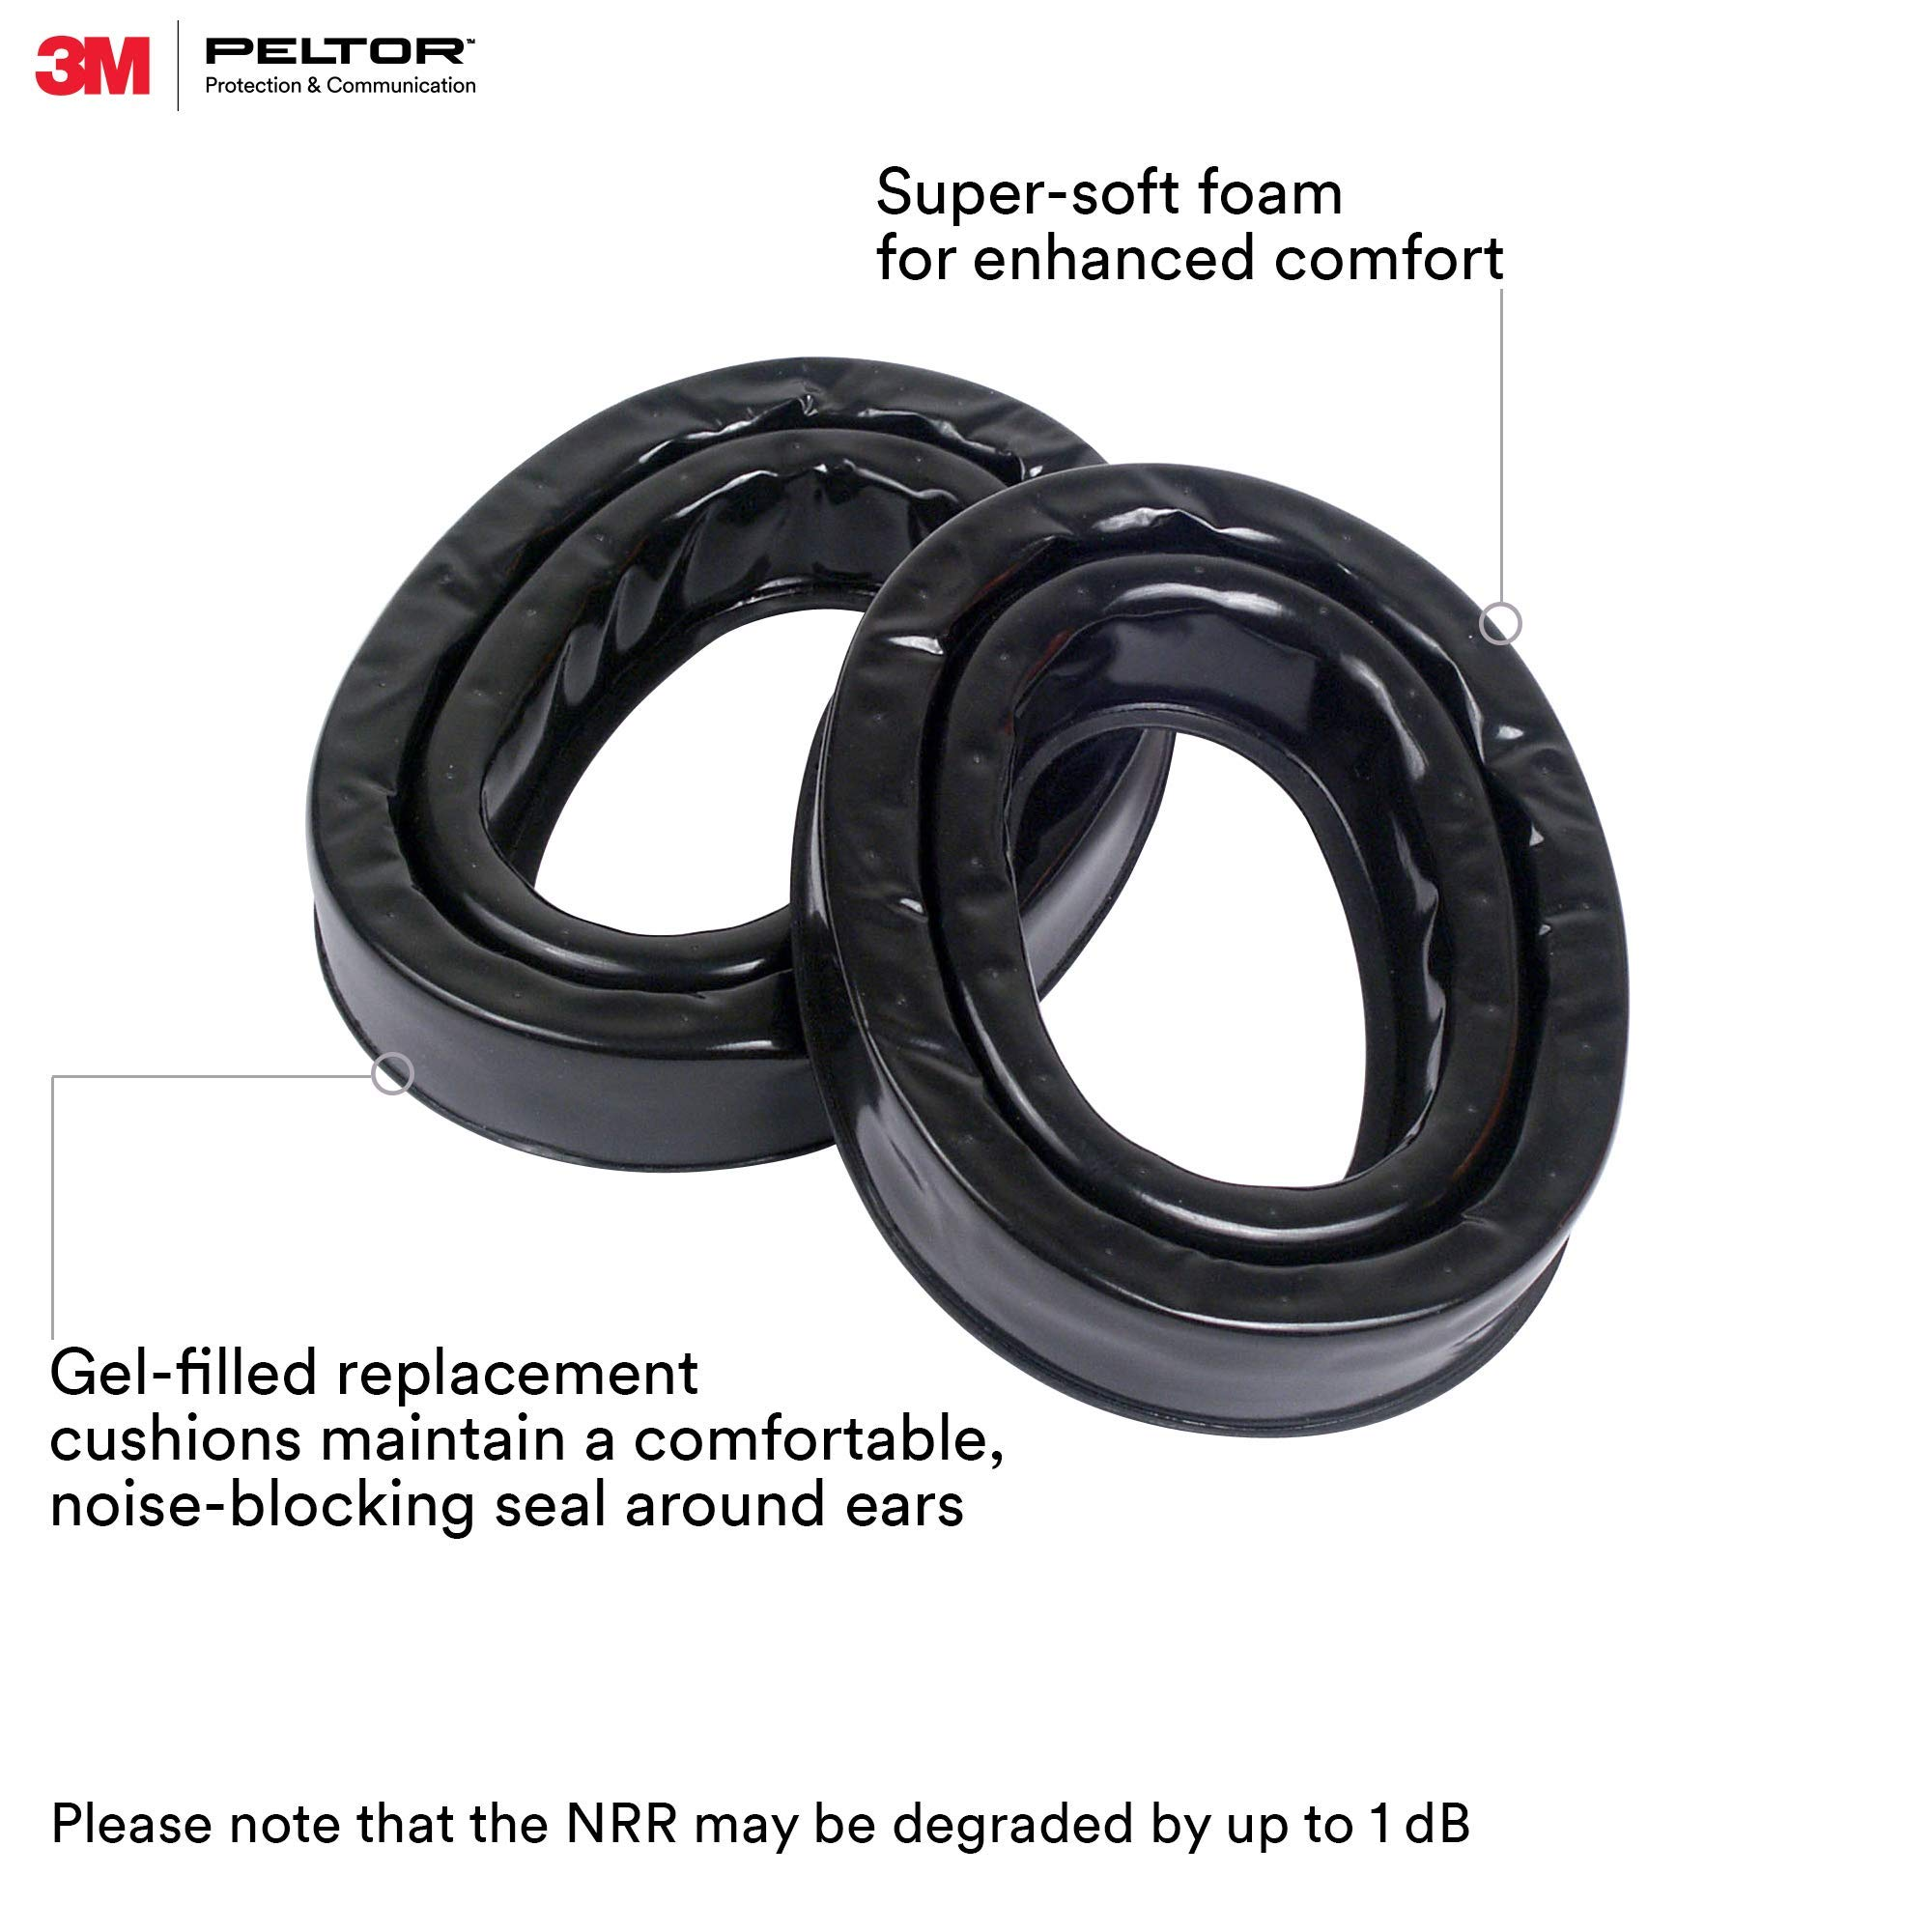 3M Personal Protective Equipment PELTOR Camelback Gel Sealing Rings HY80, Comfort Replacement Earmuff Cushions, Black by 3M Personal Protective Equipment (Image #2)